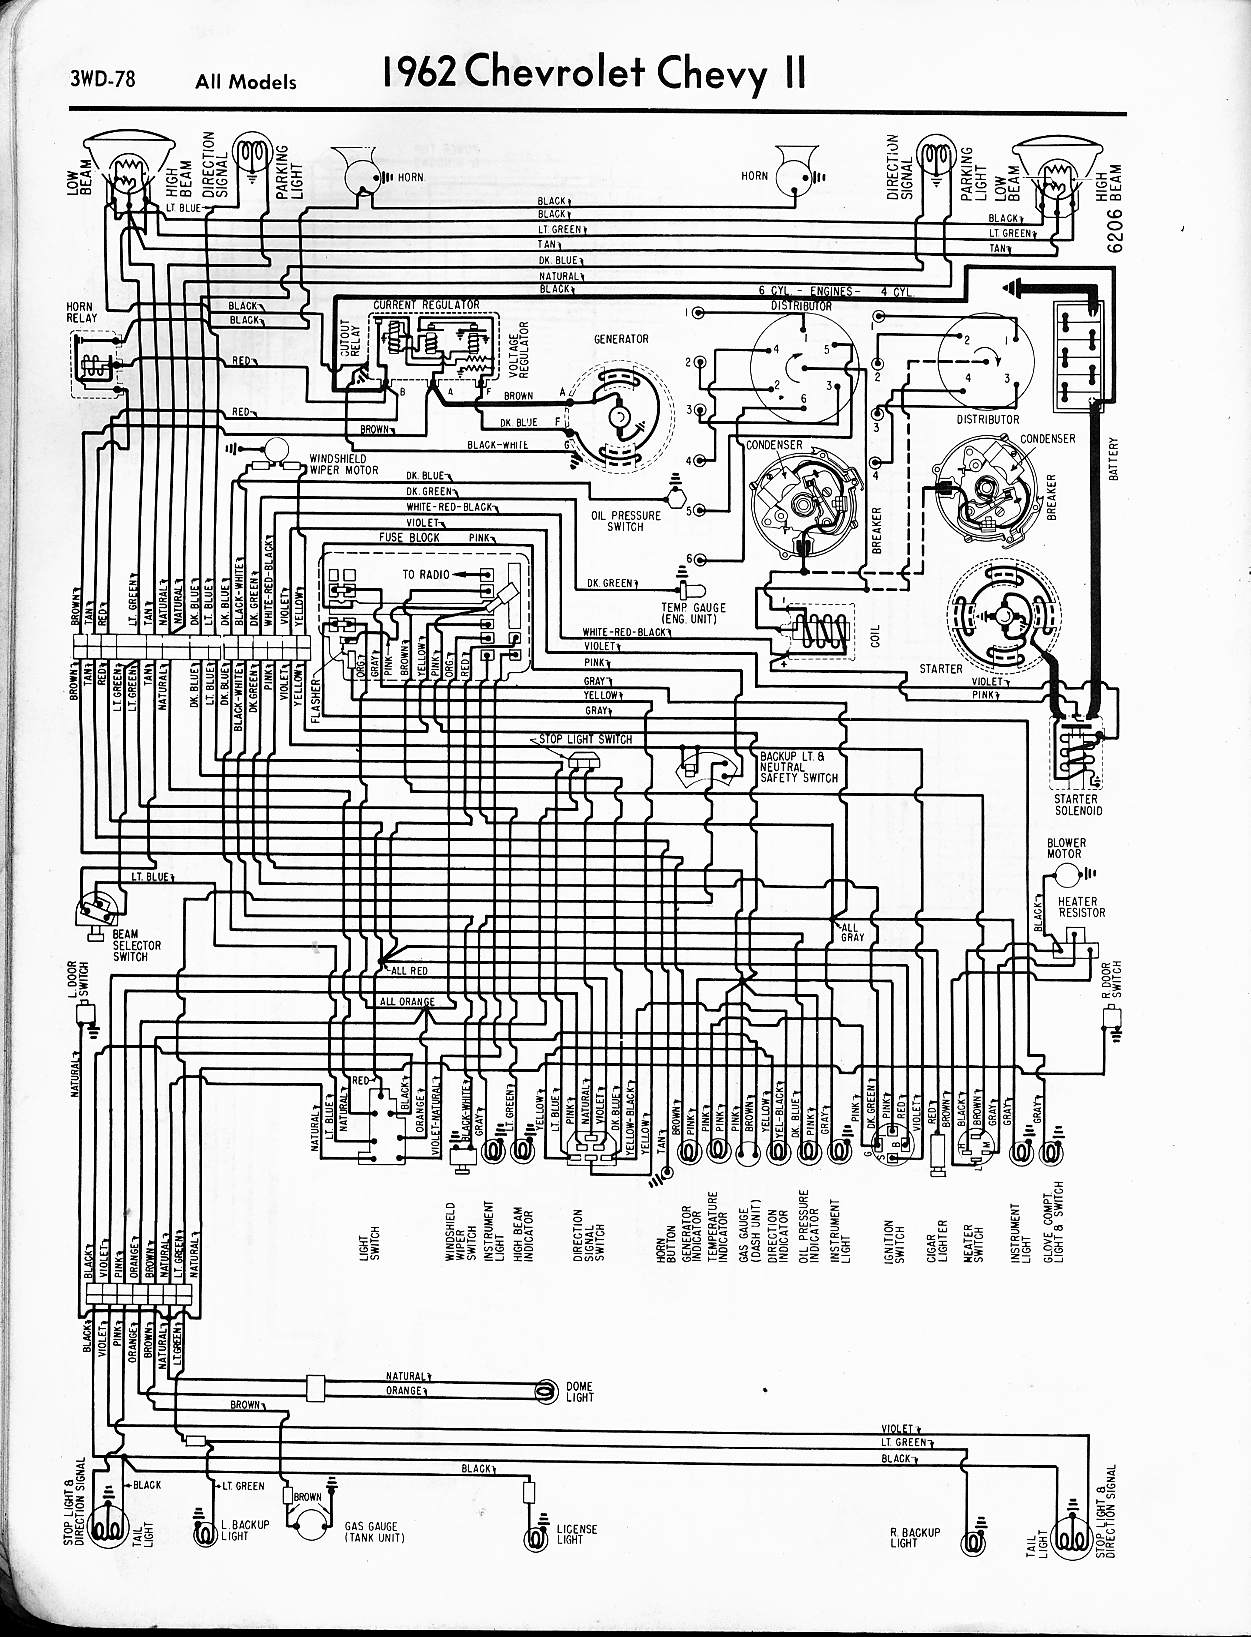 MWireChev62_3WD 078 57 65 chevy wiring diagrams 66 Impala Charging Wiring at bayanpartner.co